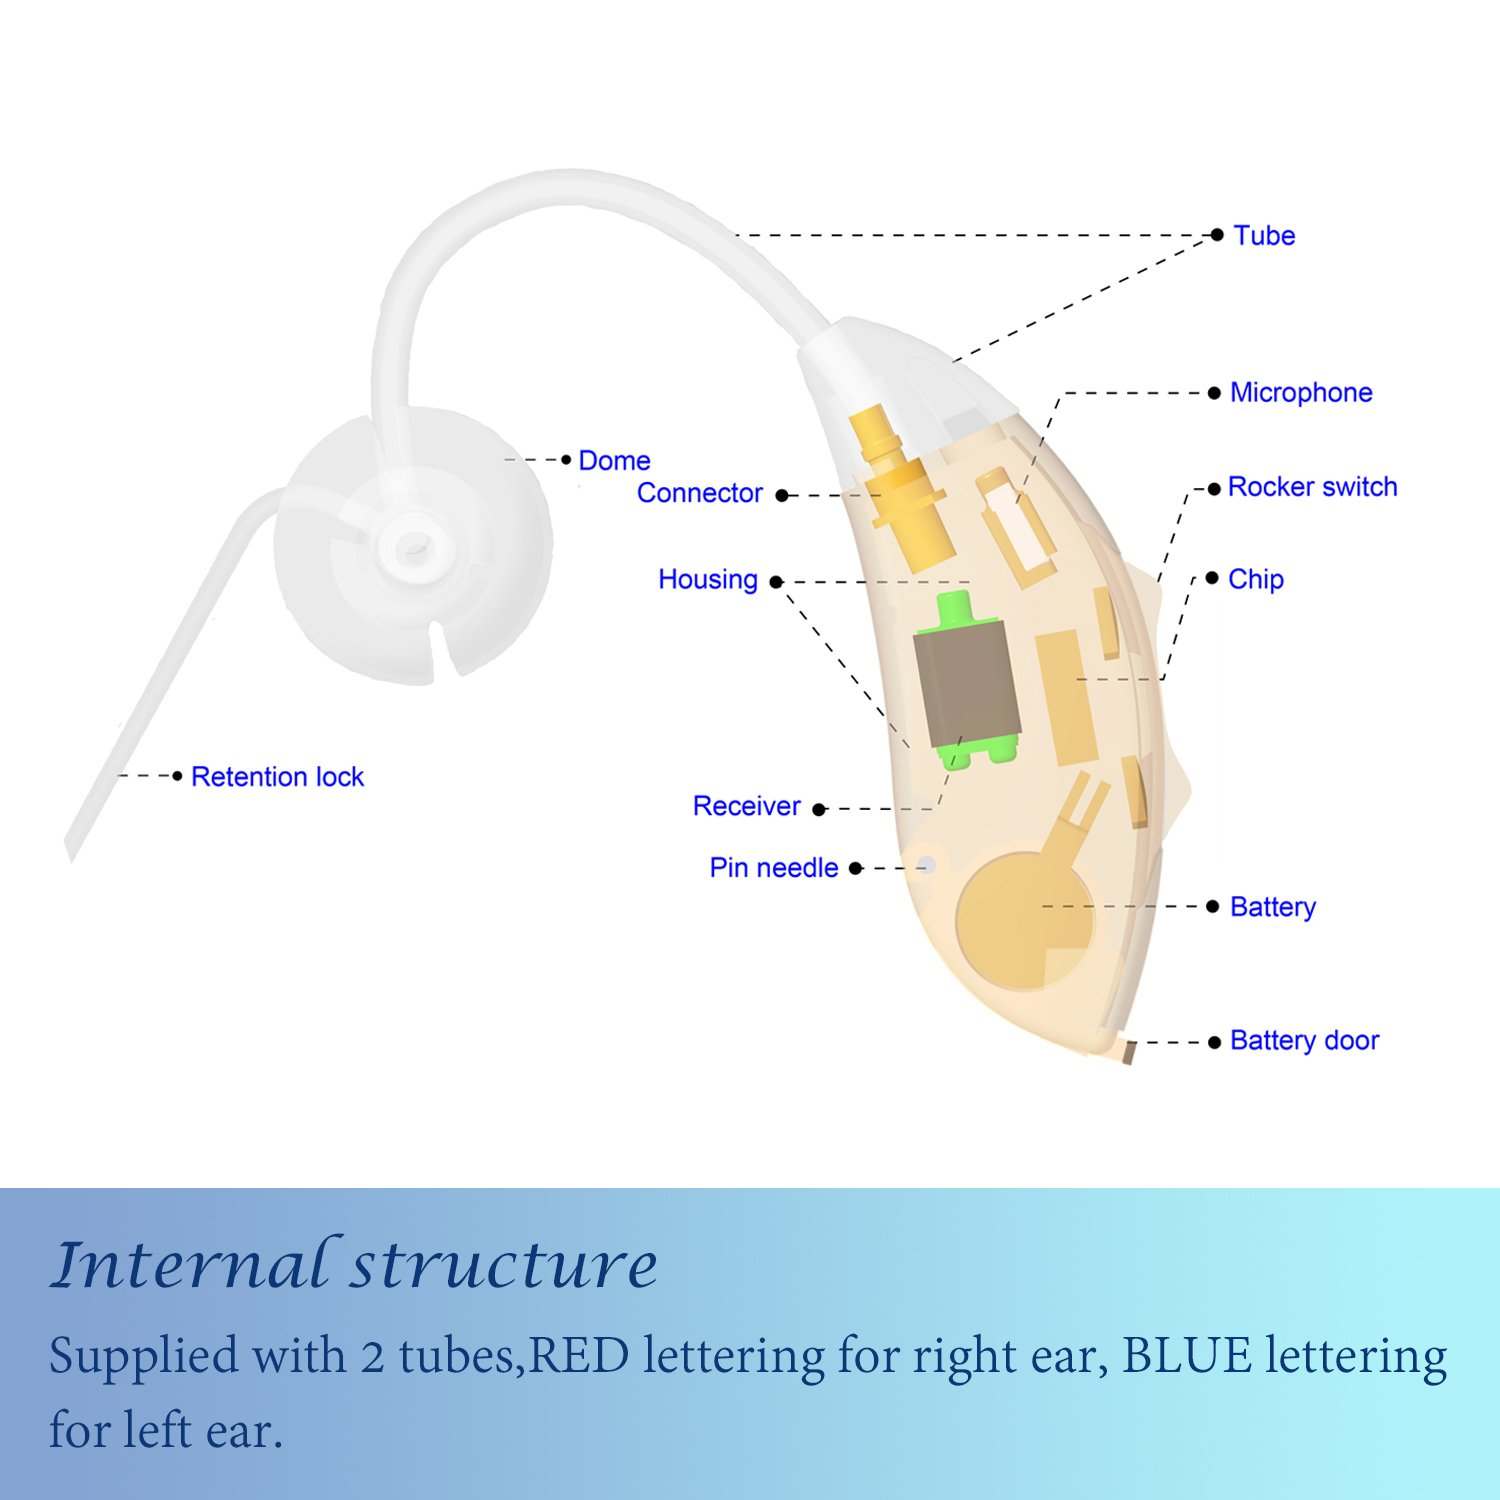 Hearing Amplifier Devices for Adults, Seniors and Children, Digital Noise Cancelling,Feedback Cancellation to Aid Hearing, Fit for Left and Right Ears, Six A10 Batteries Include, ULAIF New Design by Ulaif (Image #7)